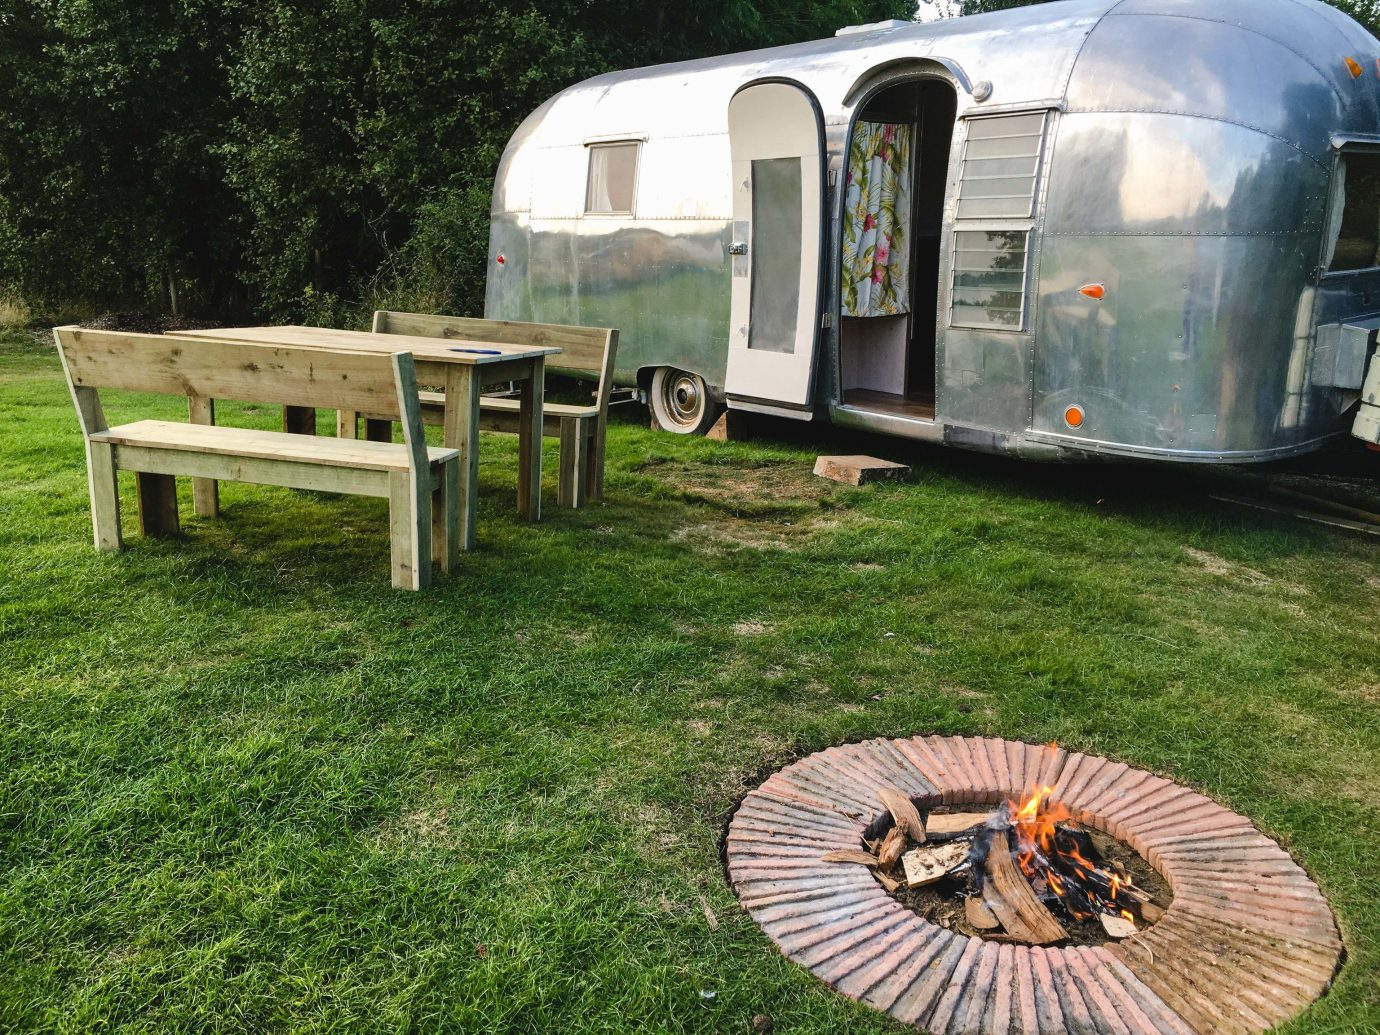 Glamping Outdoors + Adventure Trip Ideas grass outdoor tree camping vehicle travel trailer trailer park caravan motor vehicle automotive exterior recreation lawn plant community